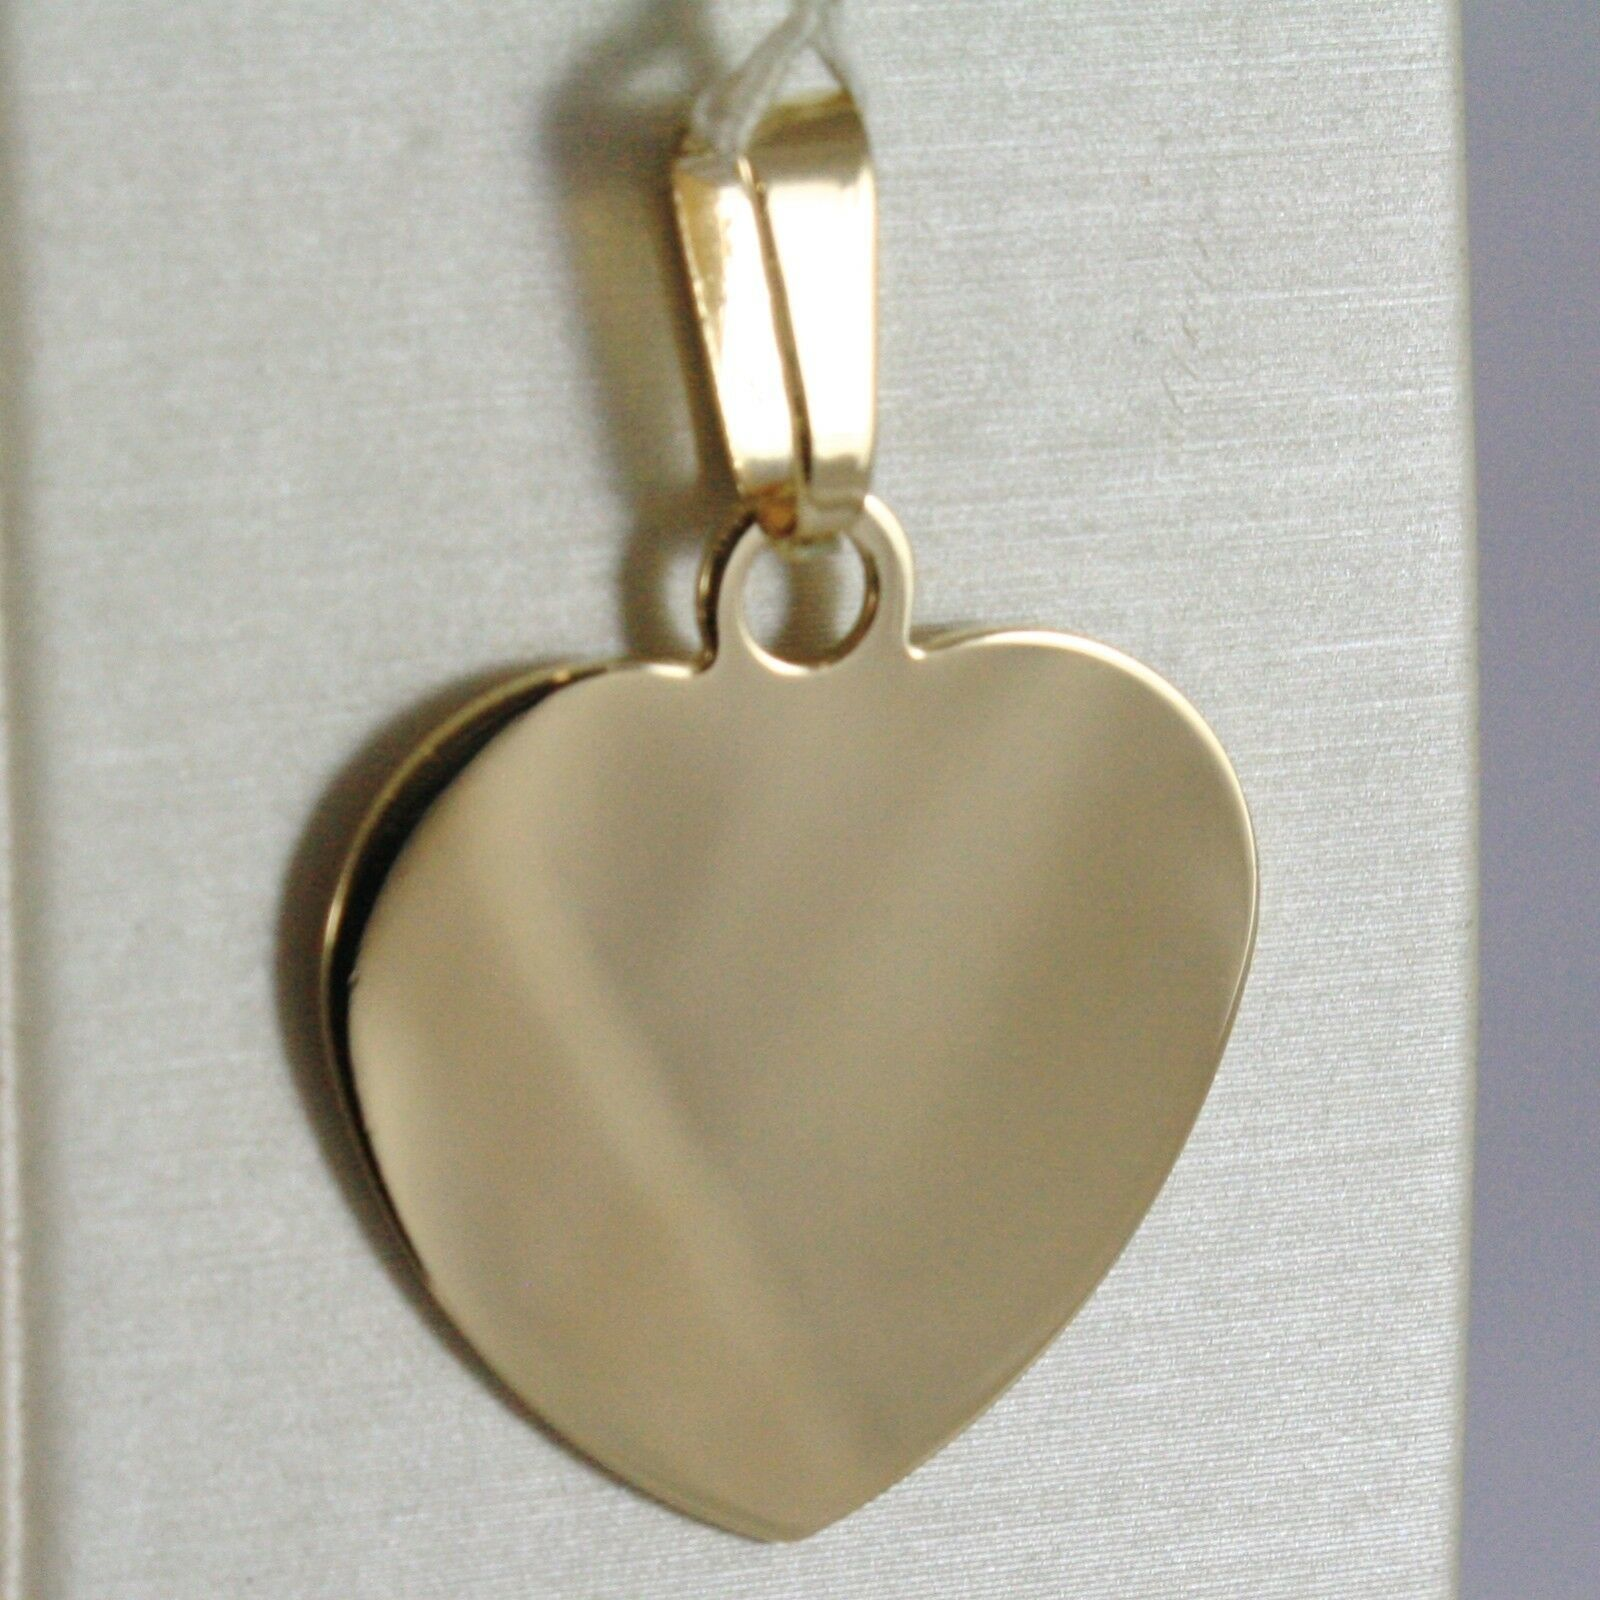 18K YELLOW GOLD HEART, PHOTO & TEXT ENGRAVED PERSONALIZED PENDANT 22 MM, MEDAL